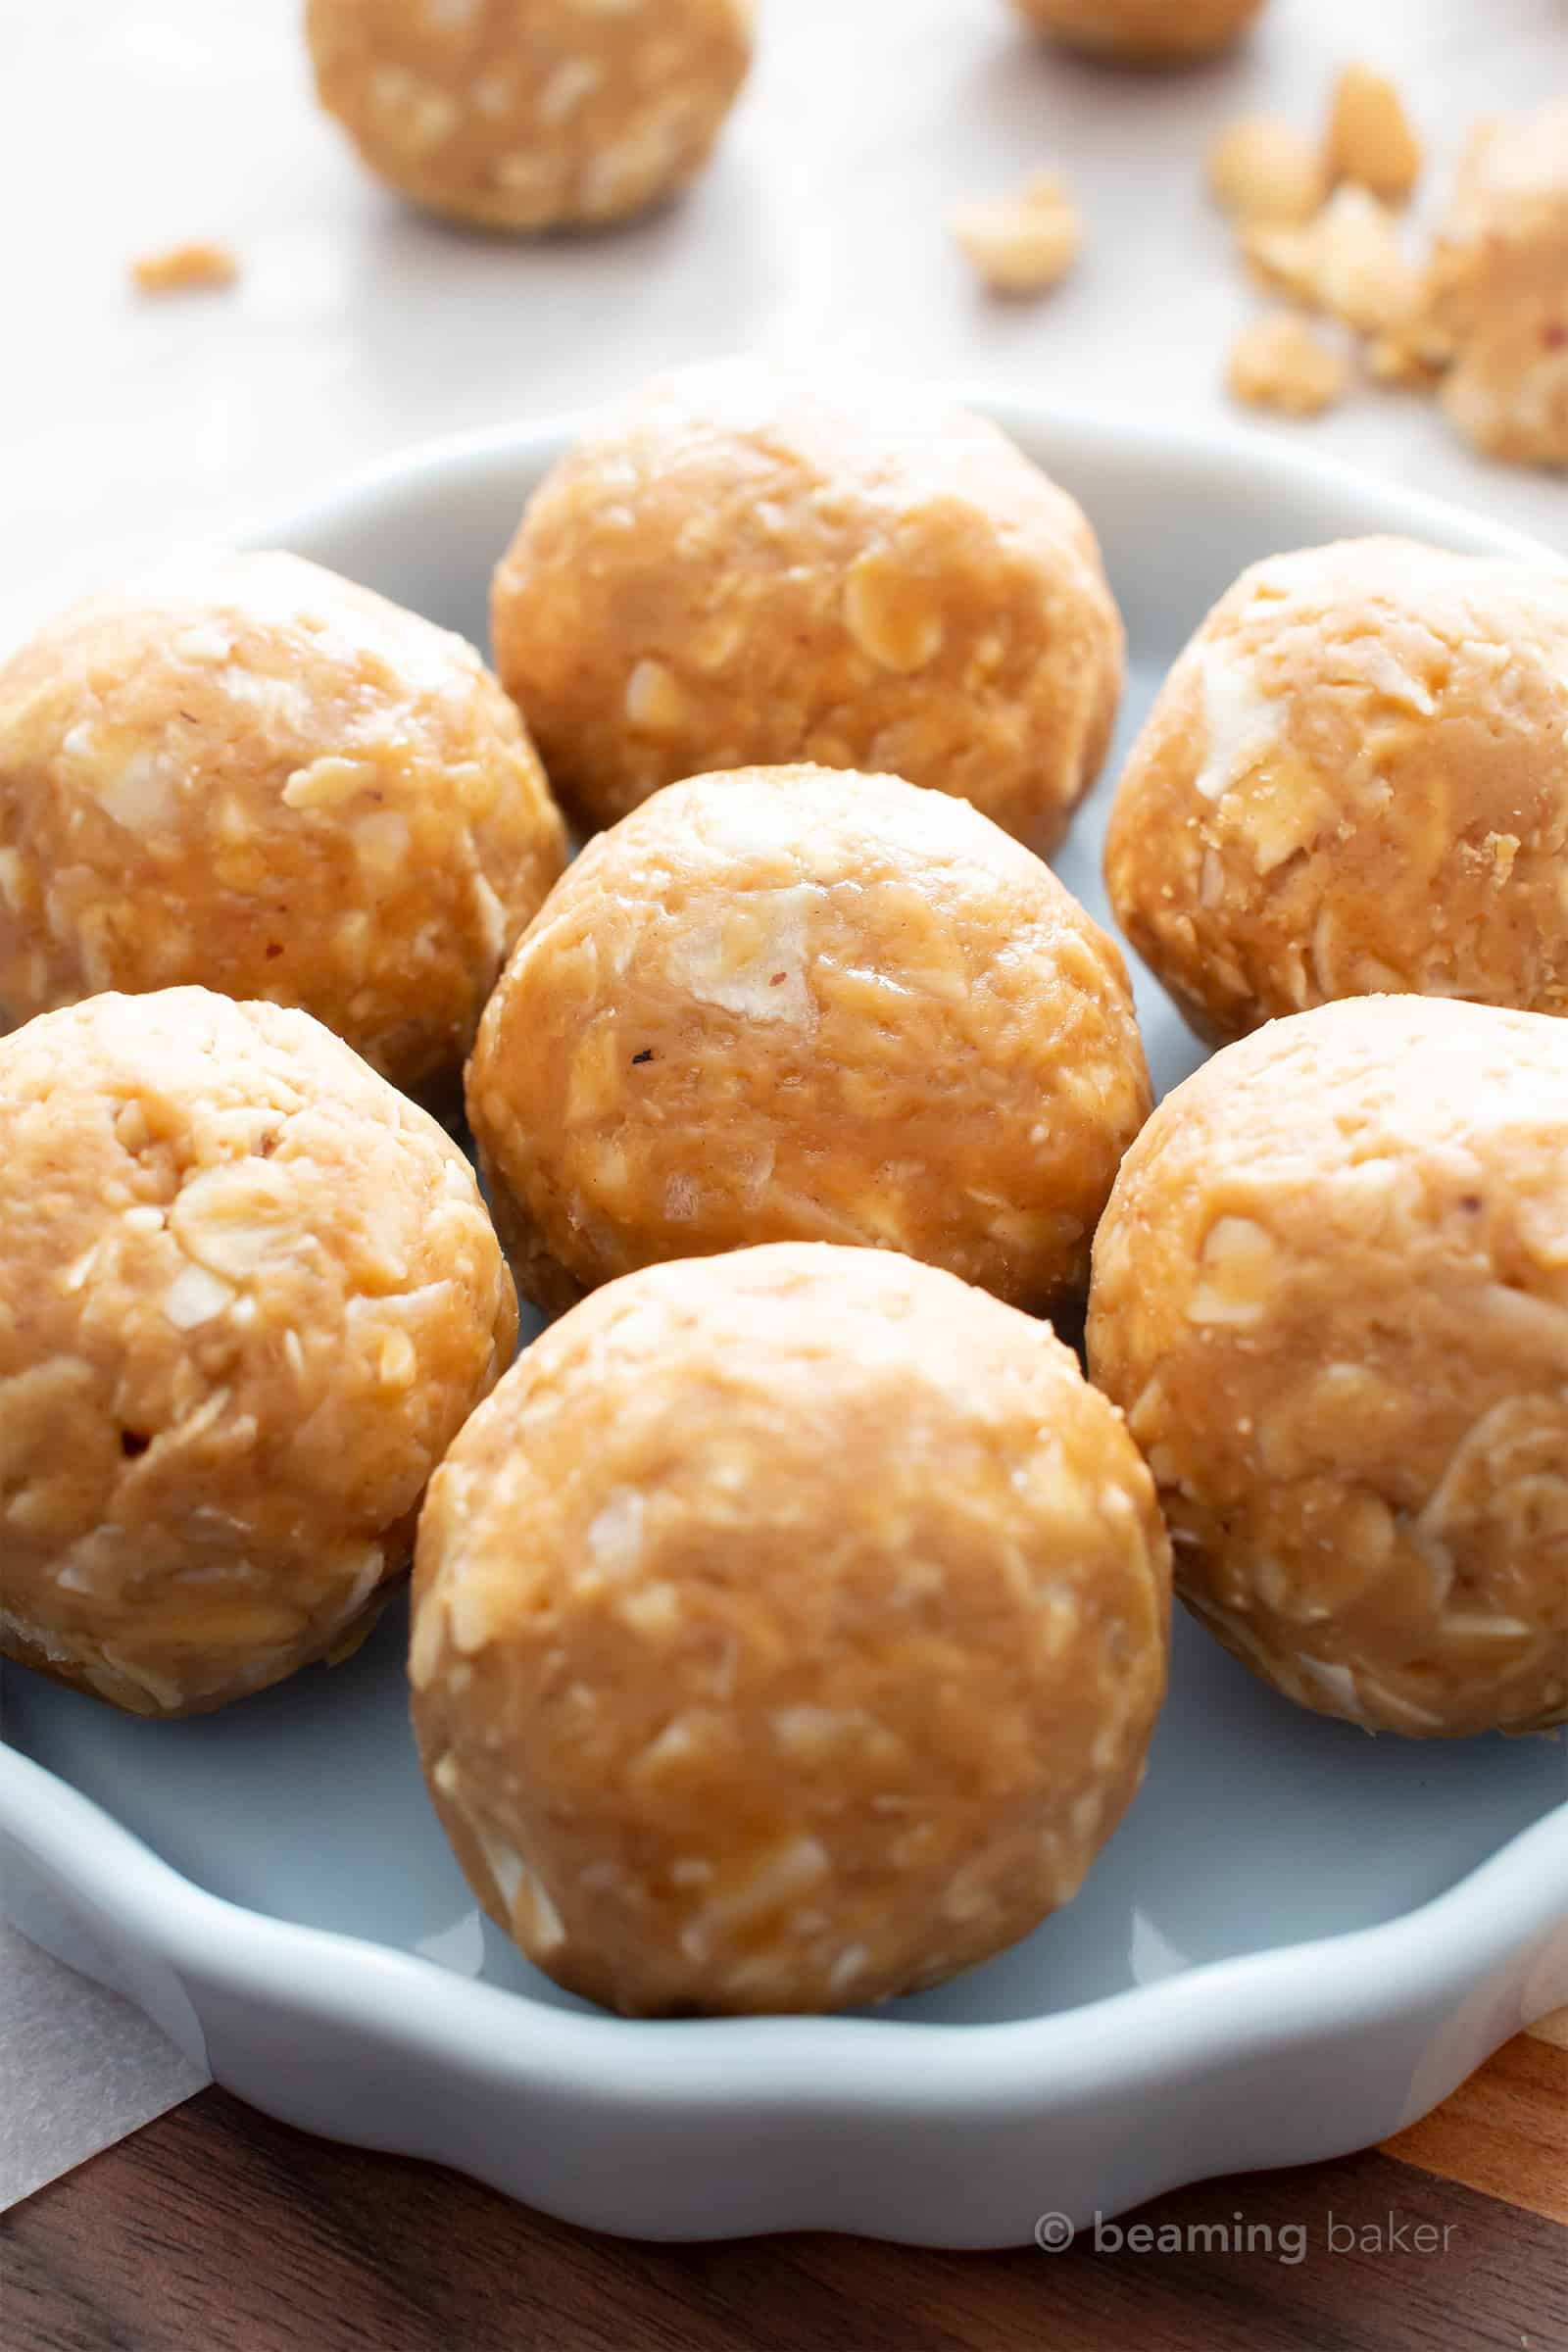 No Bake Peanut Butter Coconut Balls: this healthy energy bites recipe yields chewy, sweet 'n nutty vegan protein balls with just 6 ingredients! Easy, Gluten Free, Protein Balls! #PeanutButter #Coconut #Healthy #Vegan #GlutenFree | Recipe at BeamingBaker.com